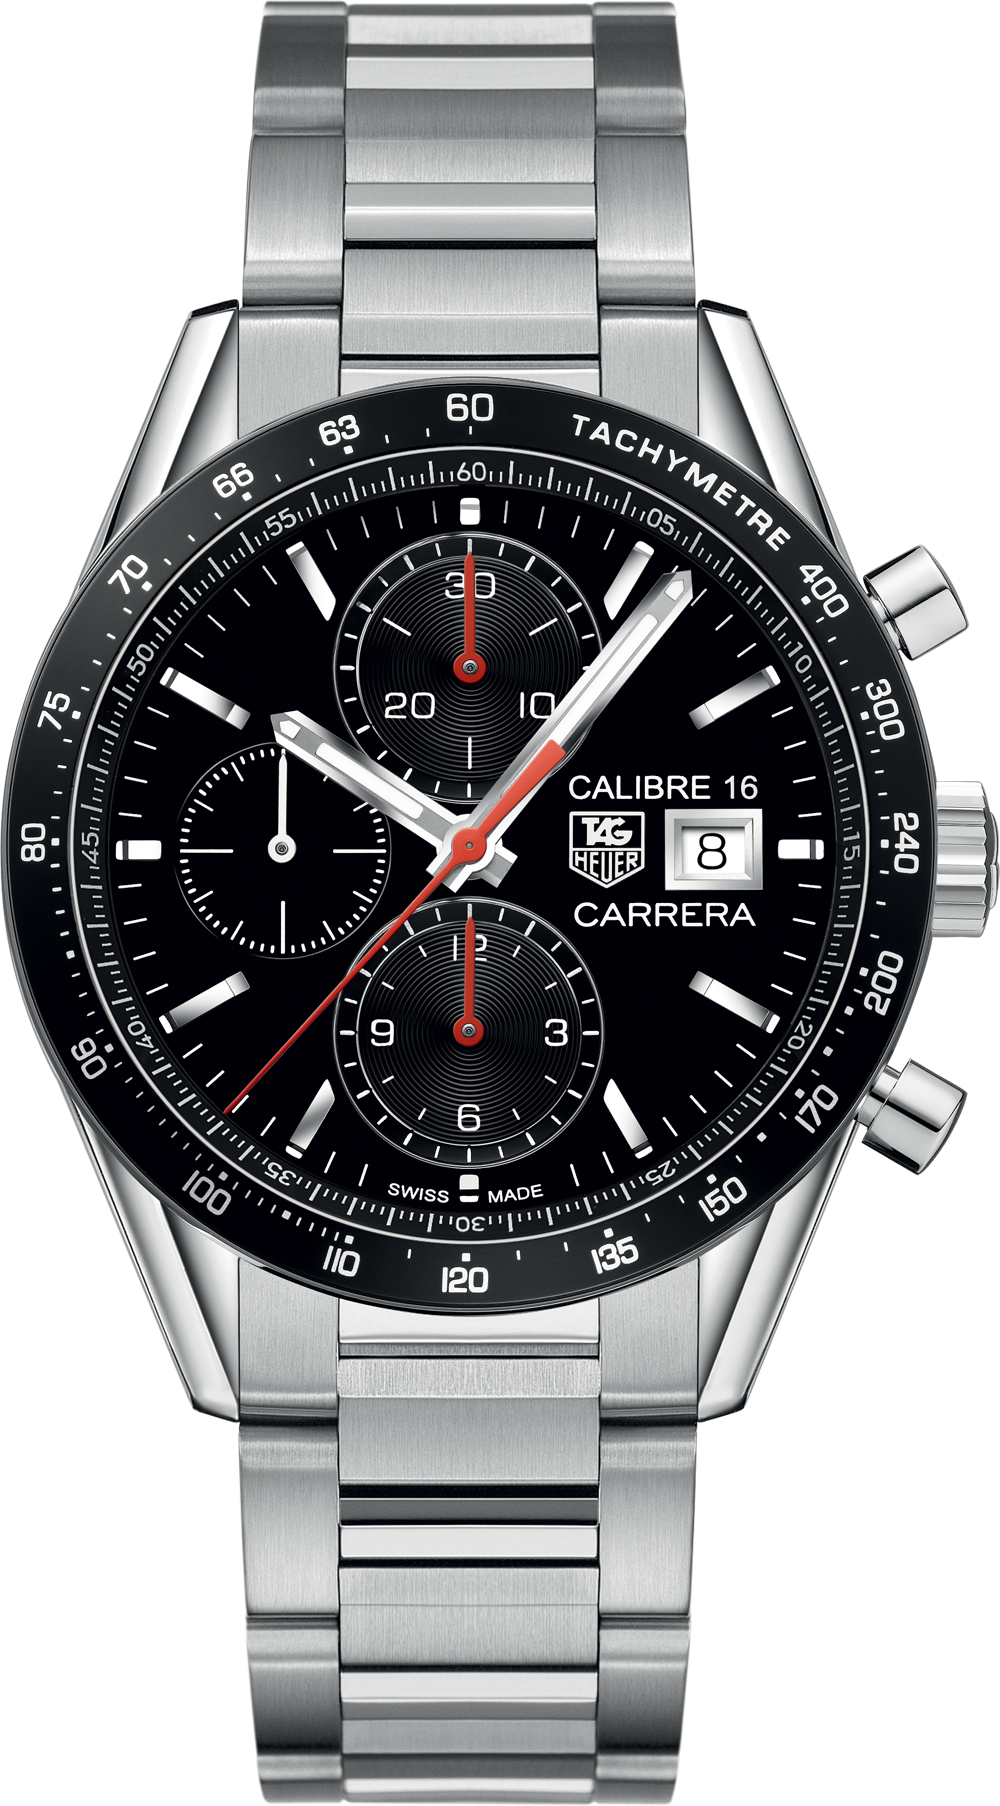 TAG Heuer CV201AK.BA0727 Carrera Calibre 16 41mm